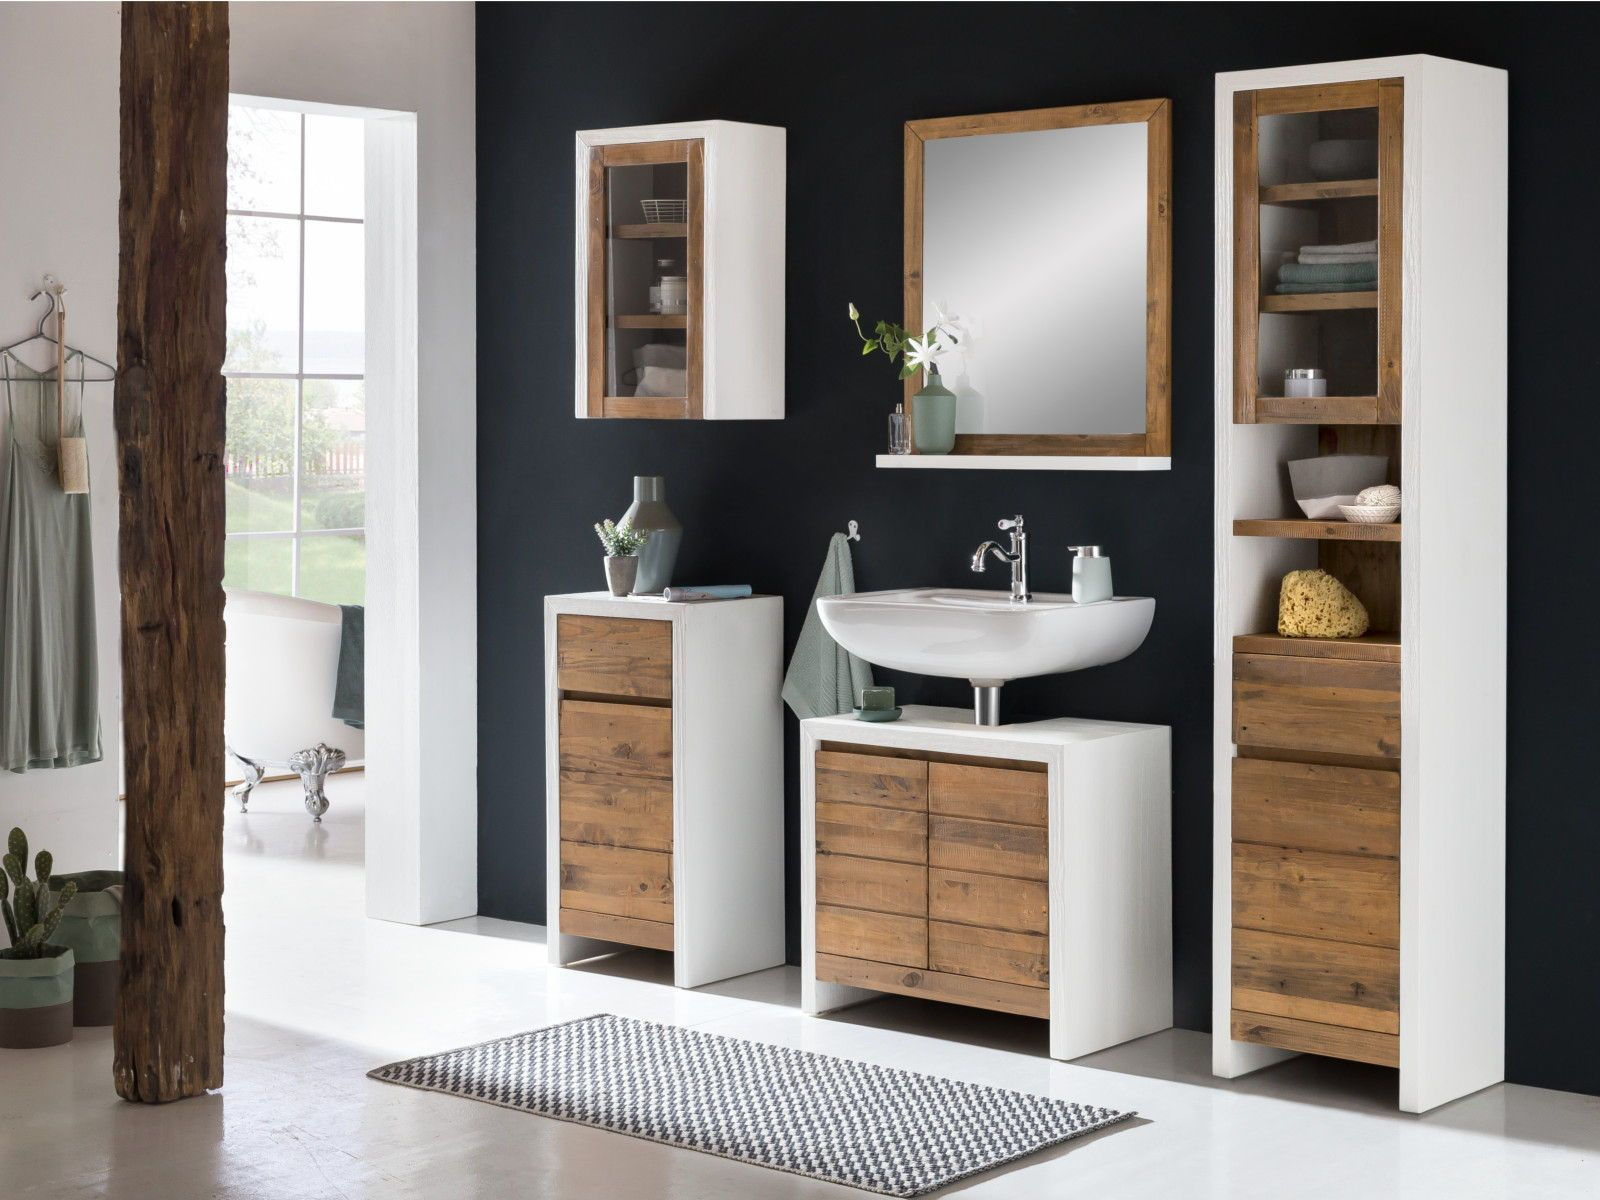 Woodking 39 S Shop Burnham Bathroom Furniture By Woodkings Bath Furniture Waschbeckenunterschrank Land Diy Bathroom Vanity Bathroom Vanity Small Hallways